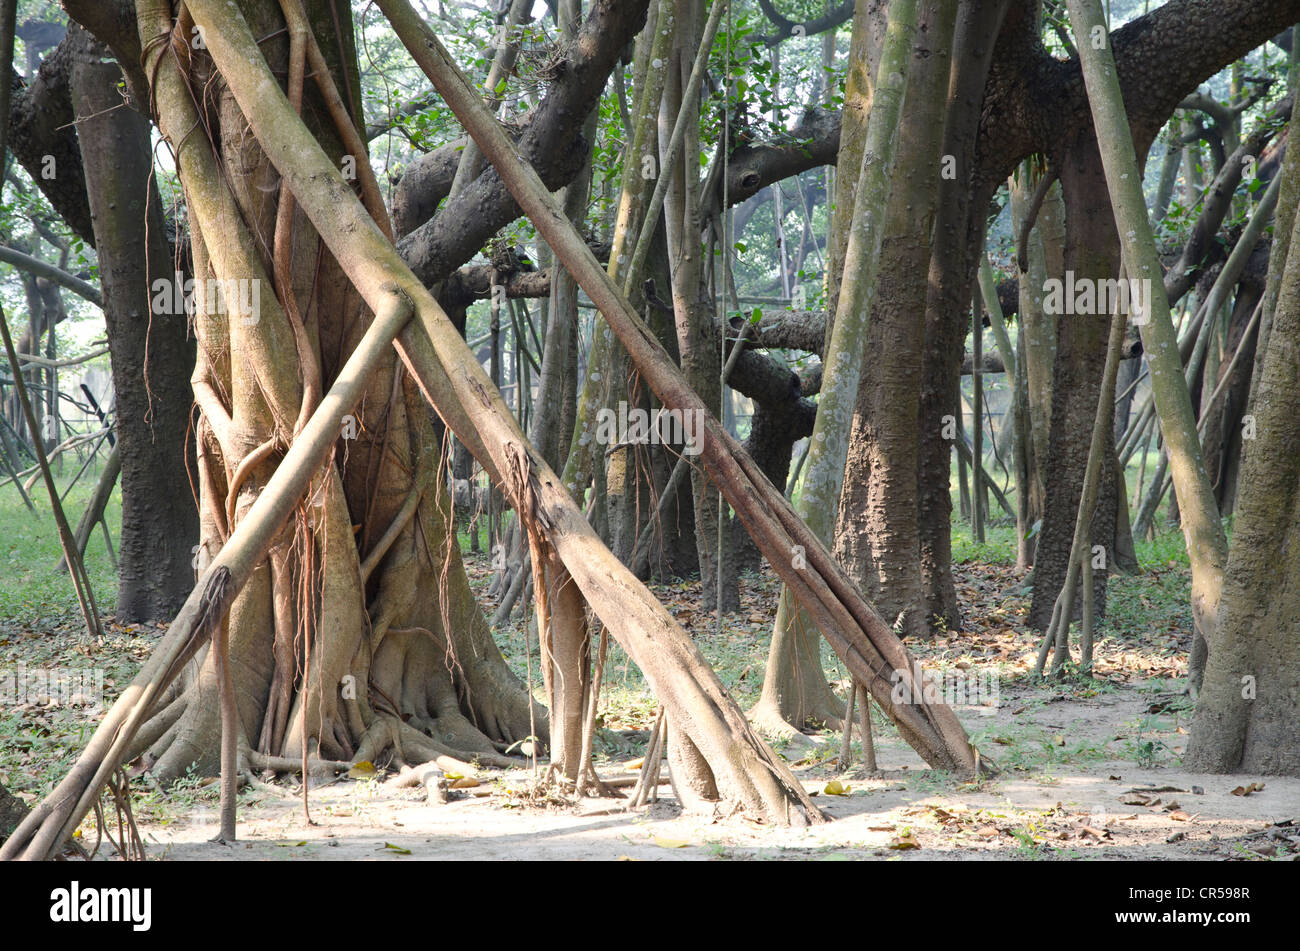 Some of the 3300 aerial roots of the world's largest banyan tree in Kolkatas botanical garden, Kolkata, West - Stock Image